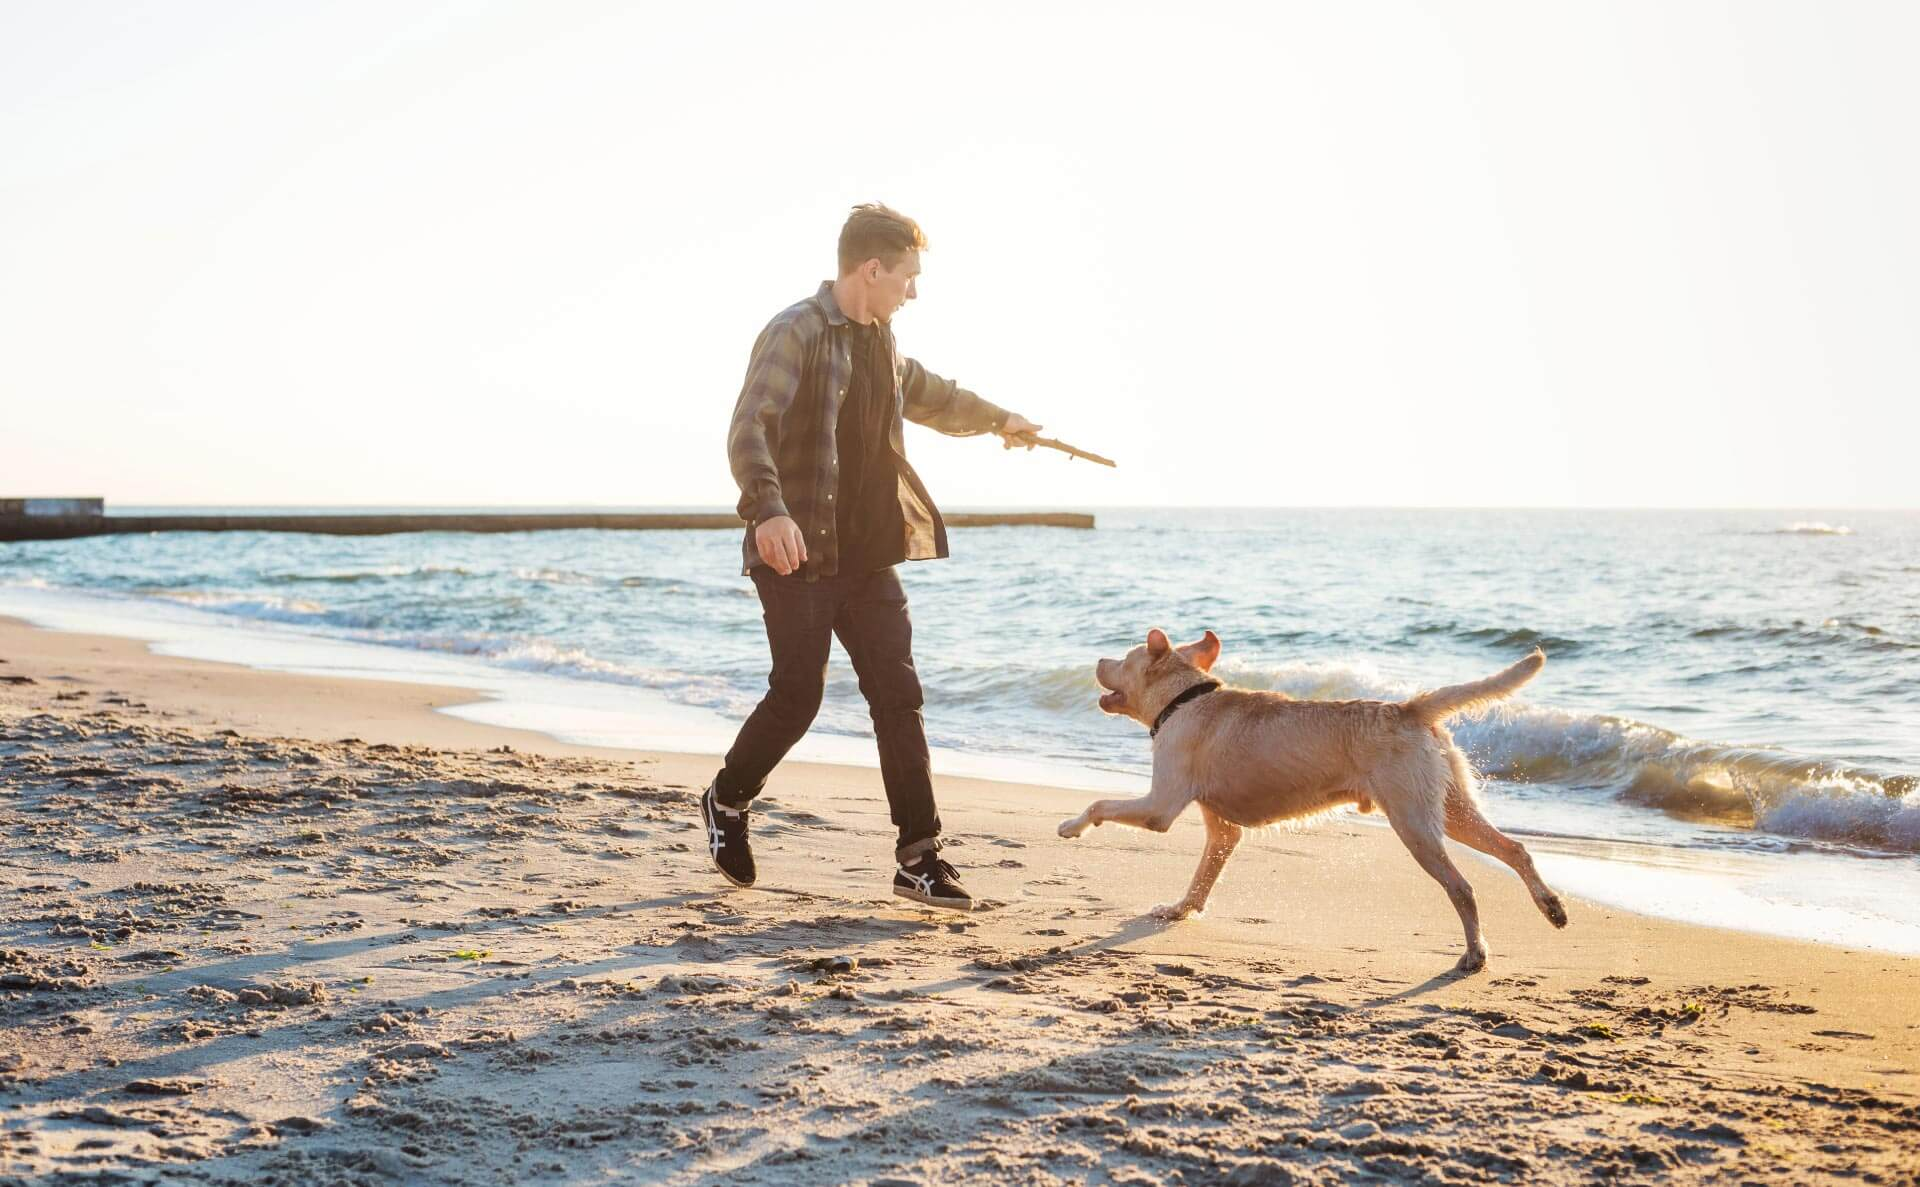 Man throwing a stick for his dog on the beach.